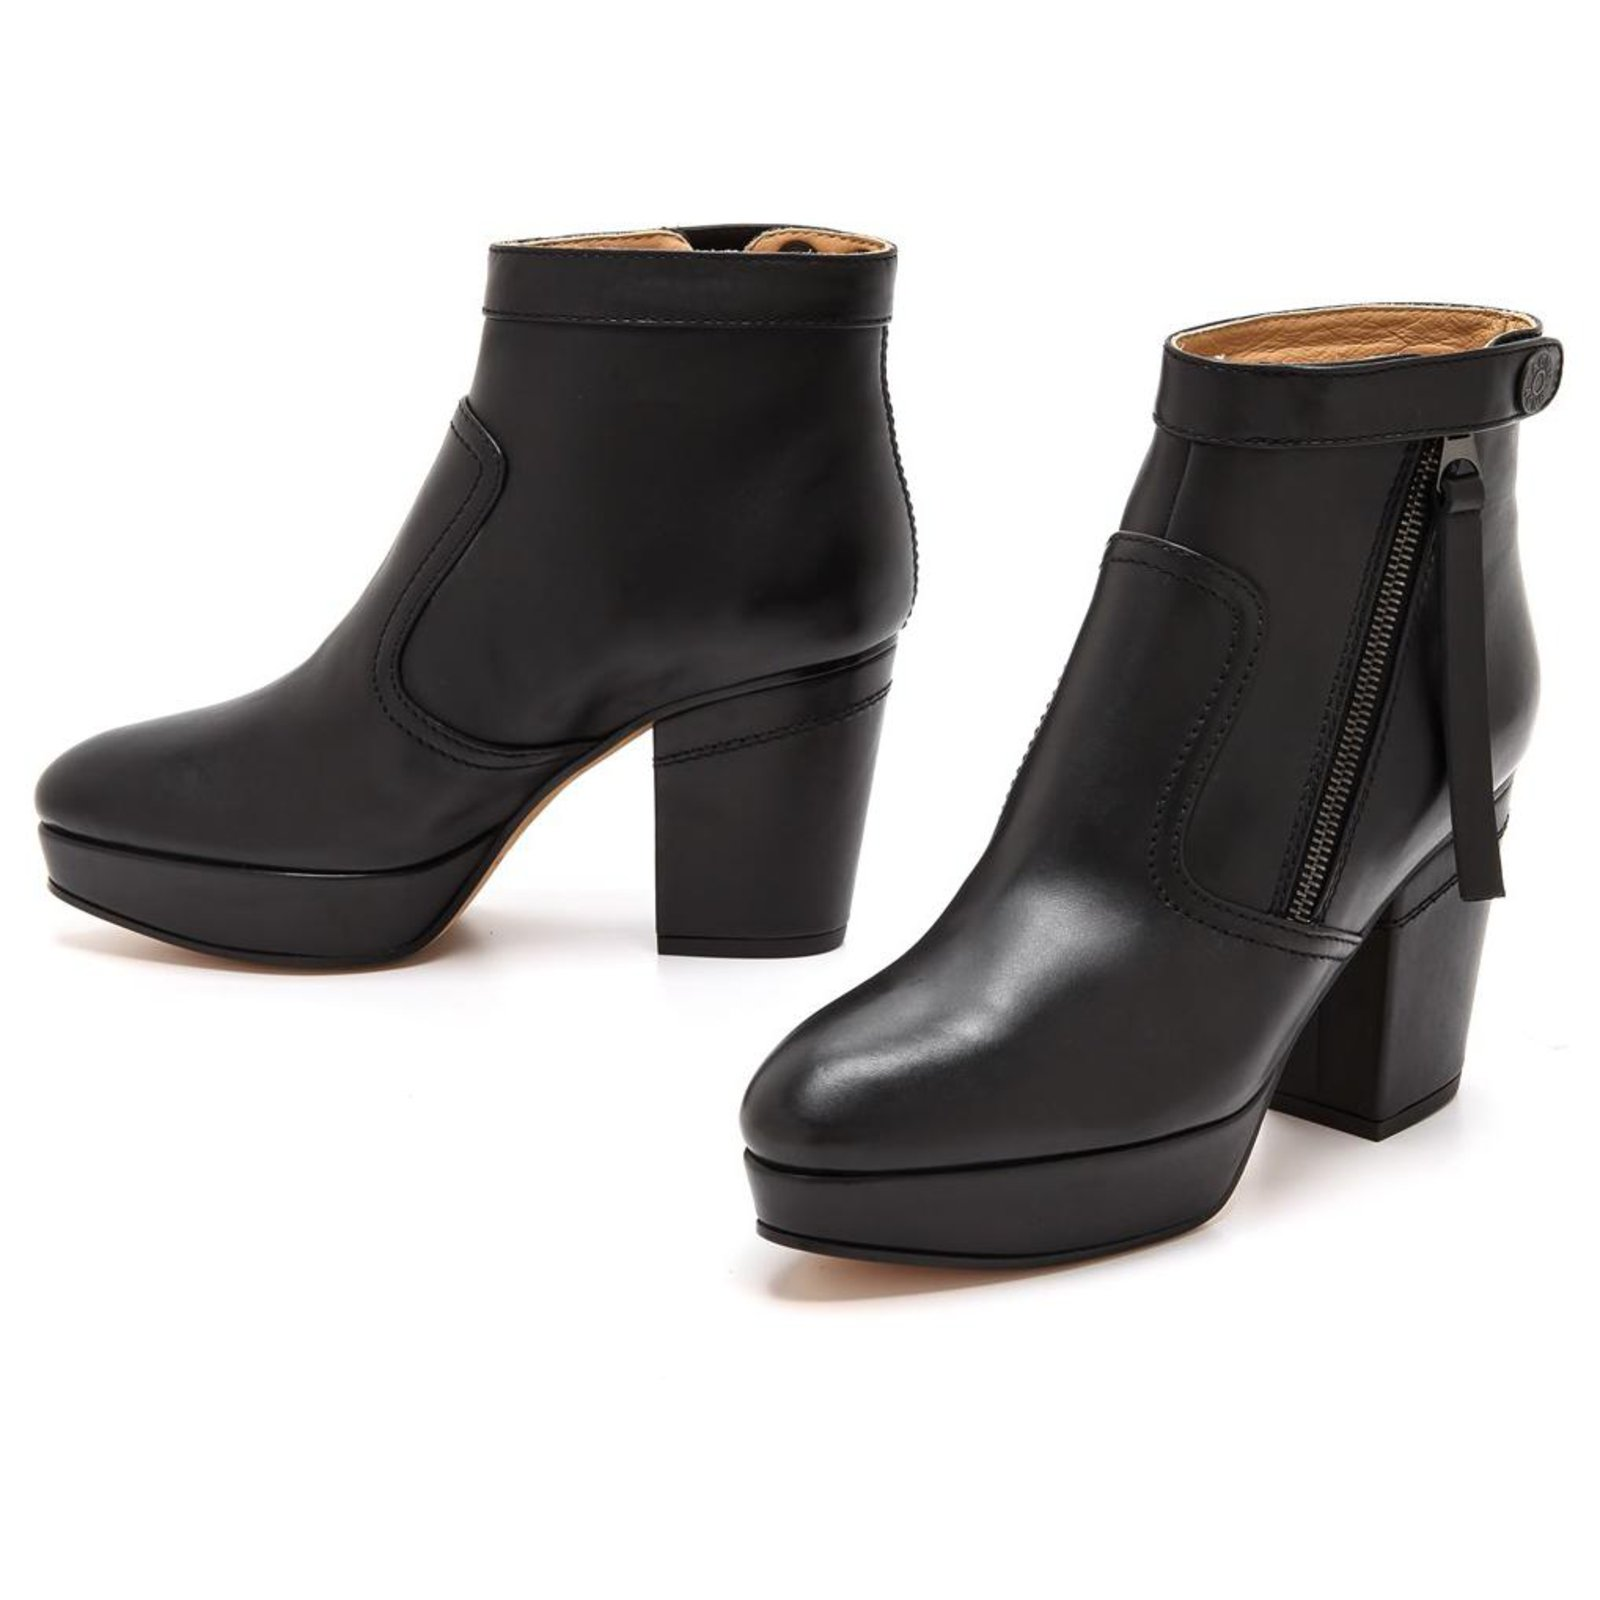 Acne Acne Track Boots, size 39 Ankle